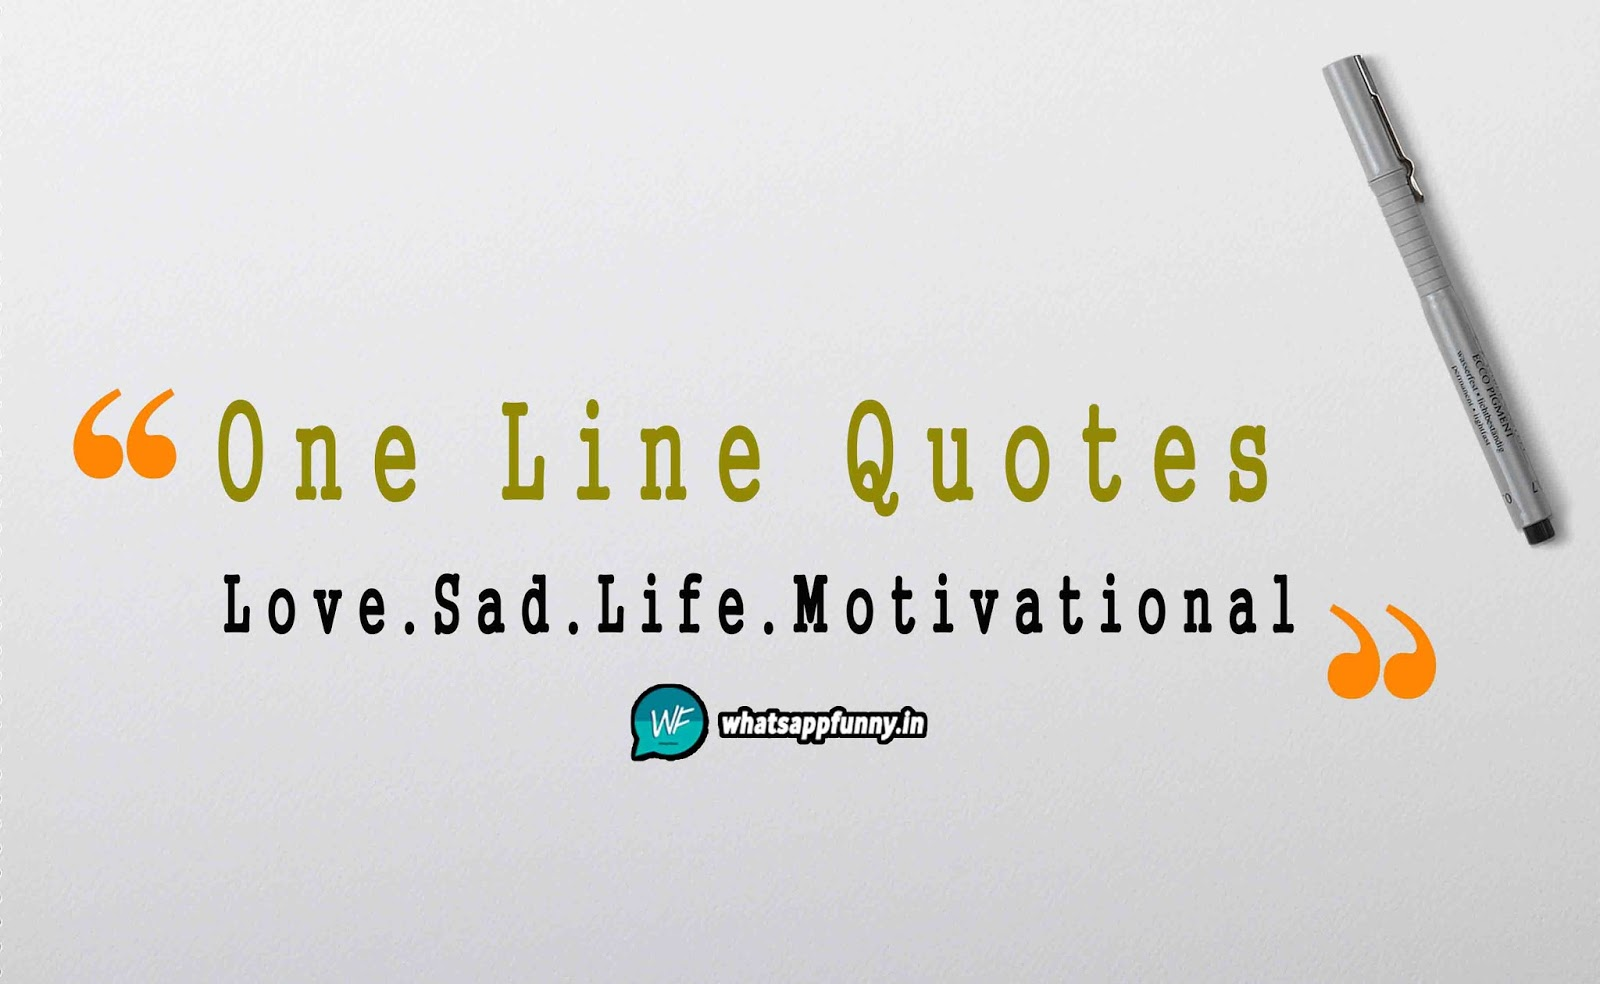 one live quotes love, life, motivational,friendship.